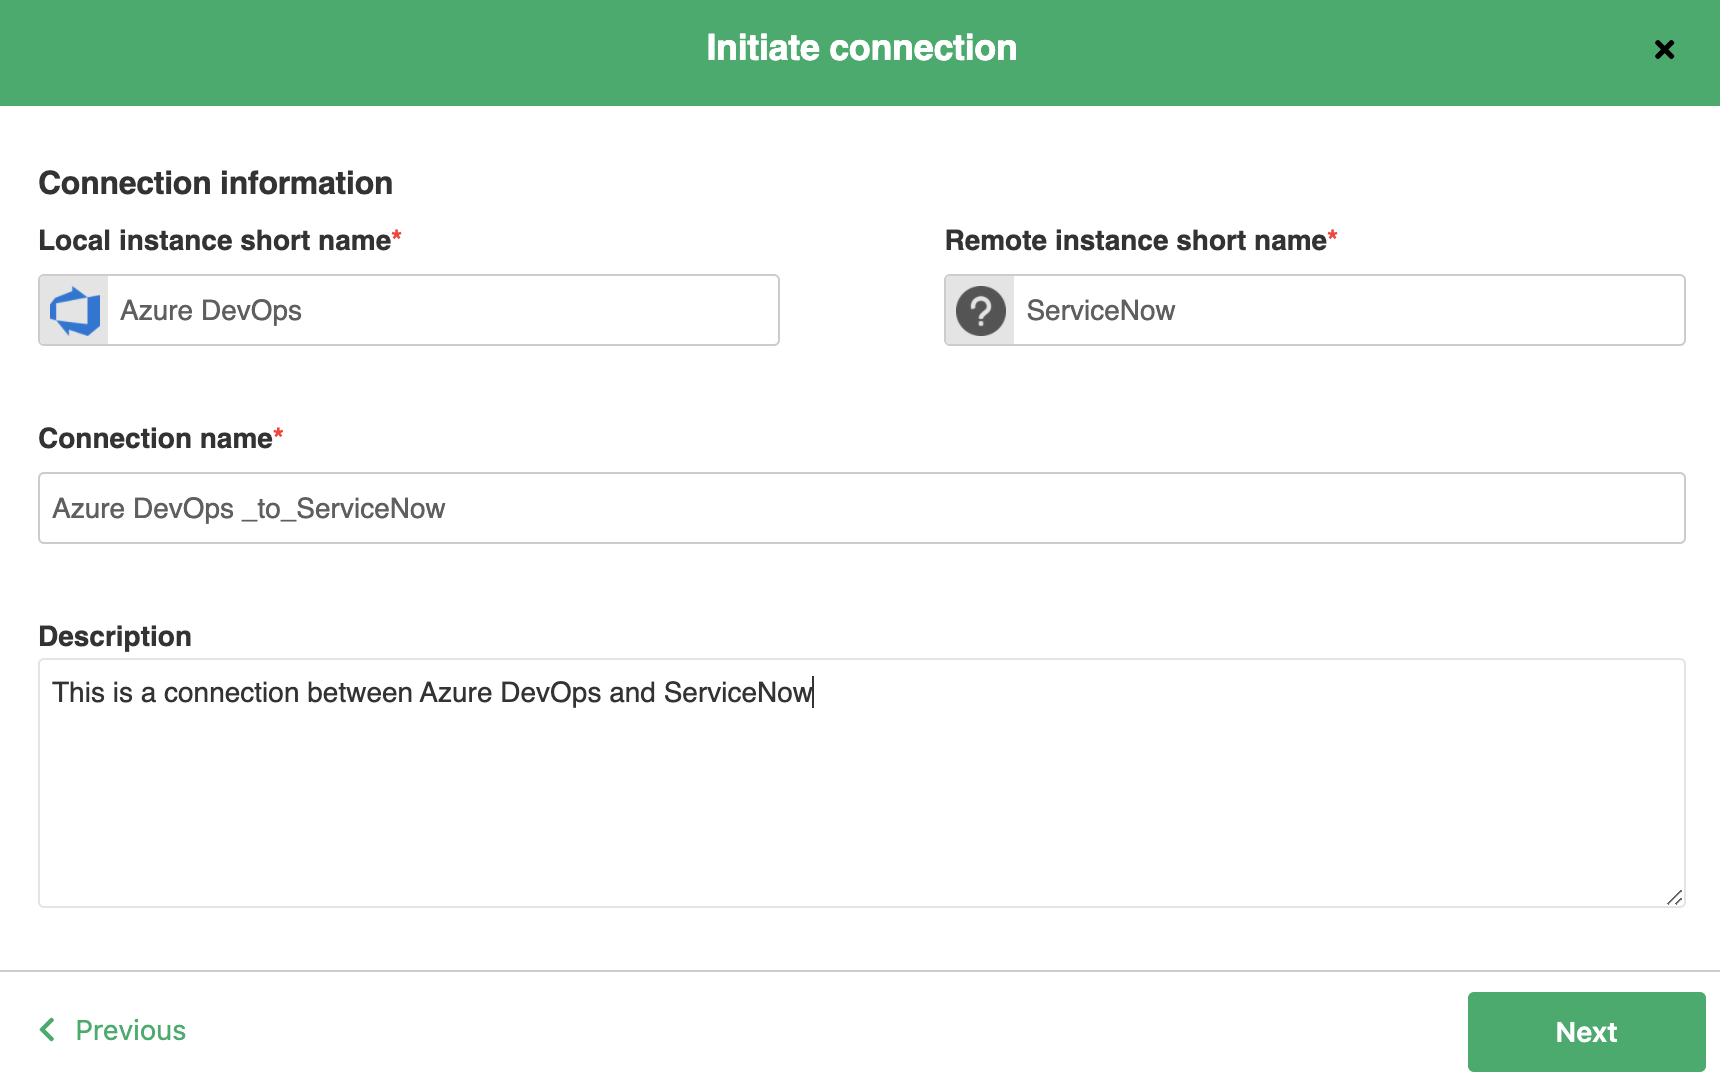 Connection name for Azure DevOps and ServiceNow